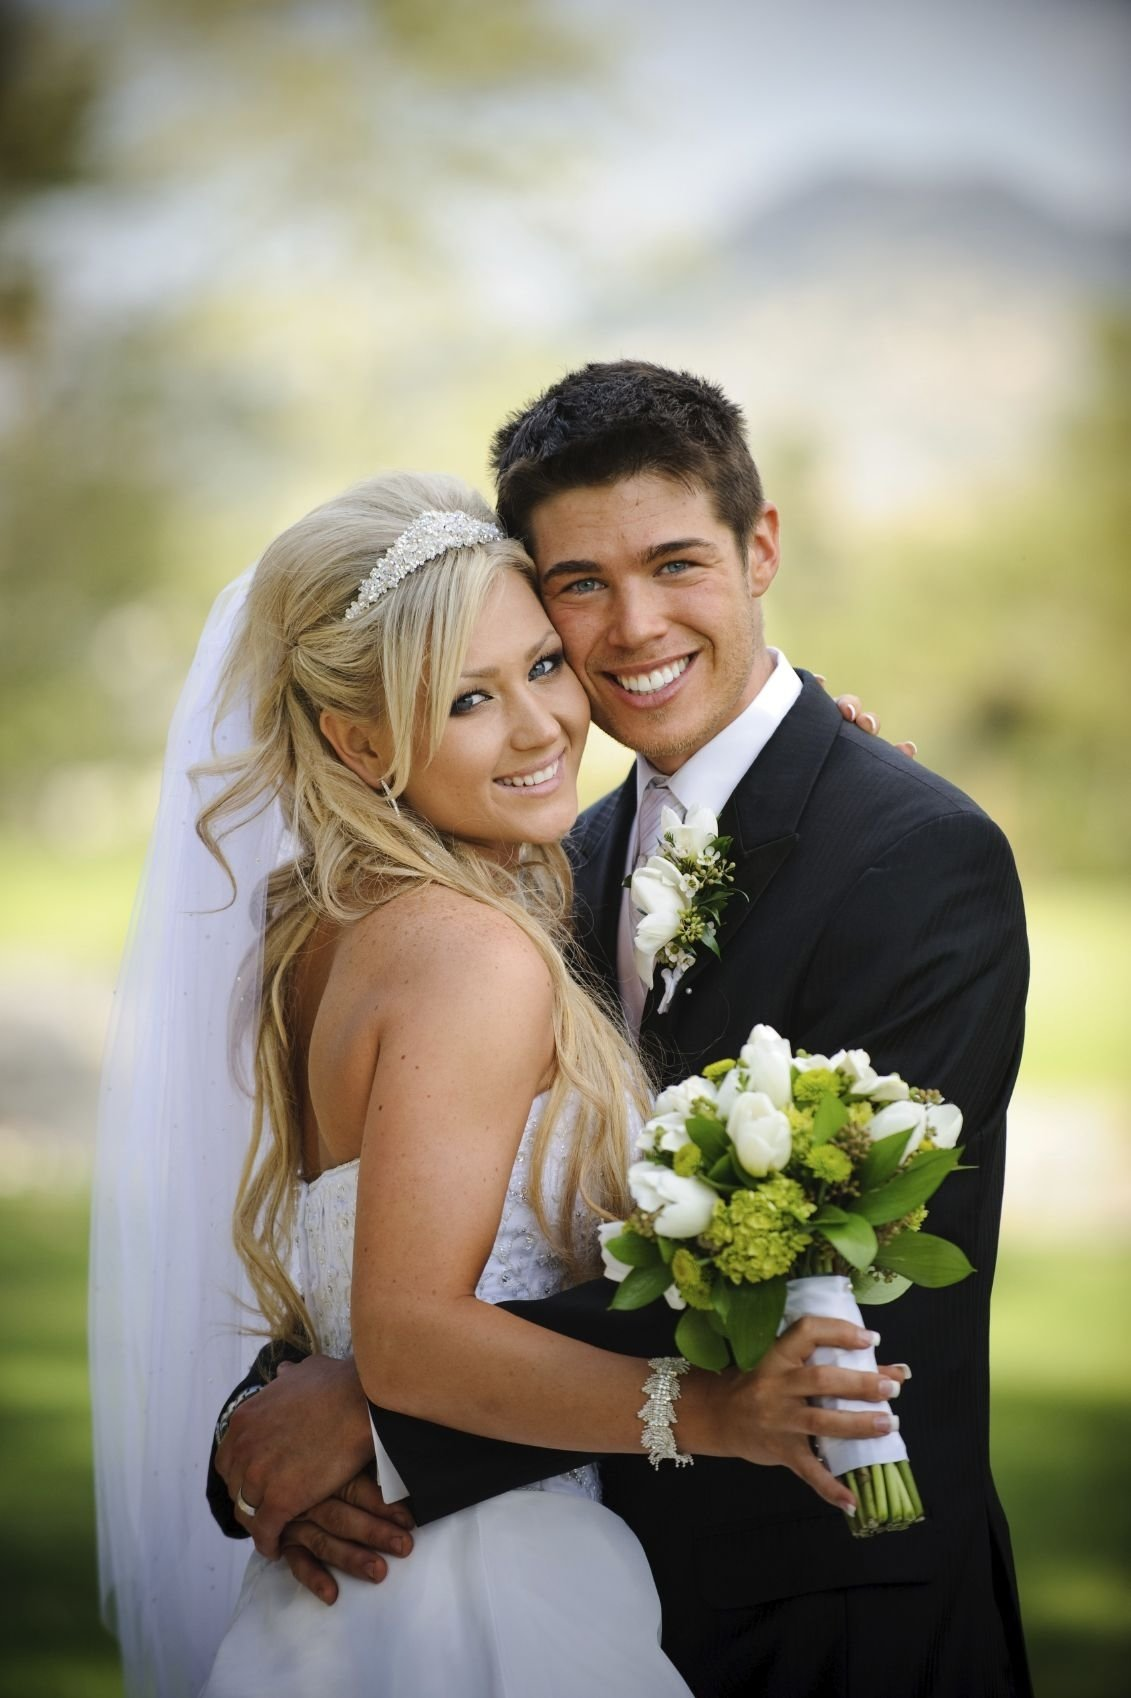 10 Attractive Bride And Groom Photo Ideas creative wedding photo ideas bride and groom wedding package 1 2020